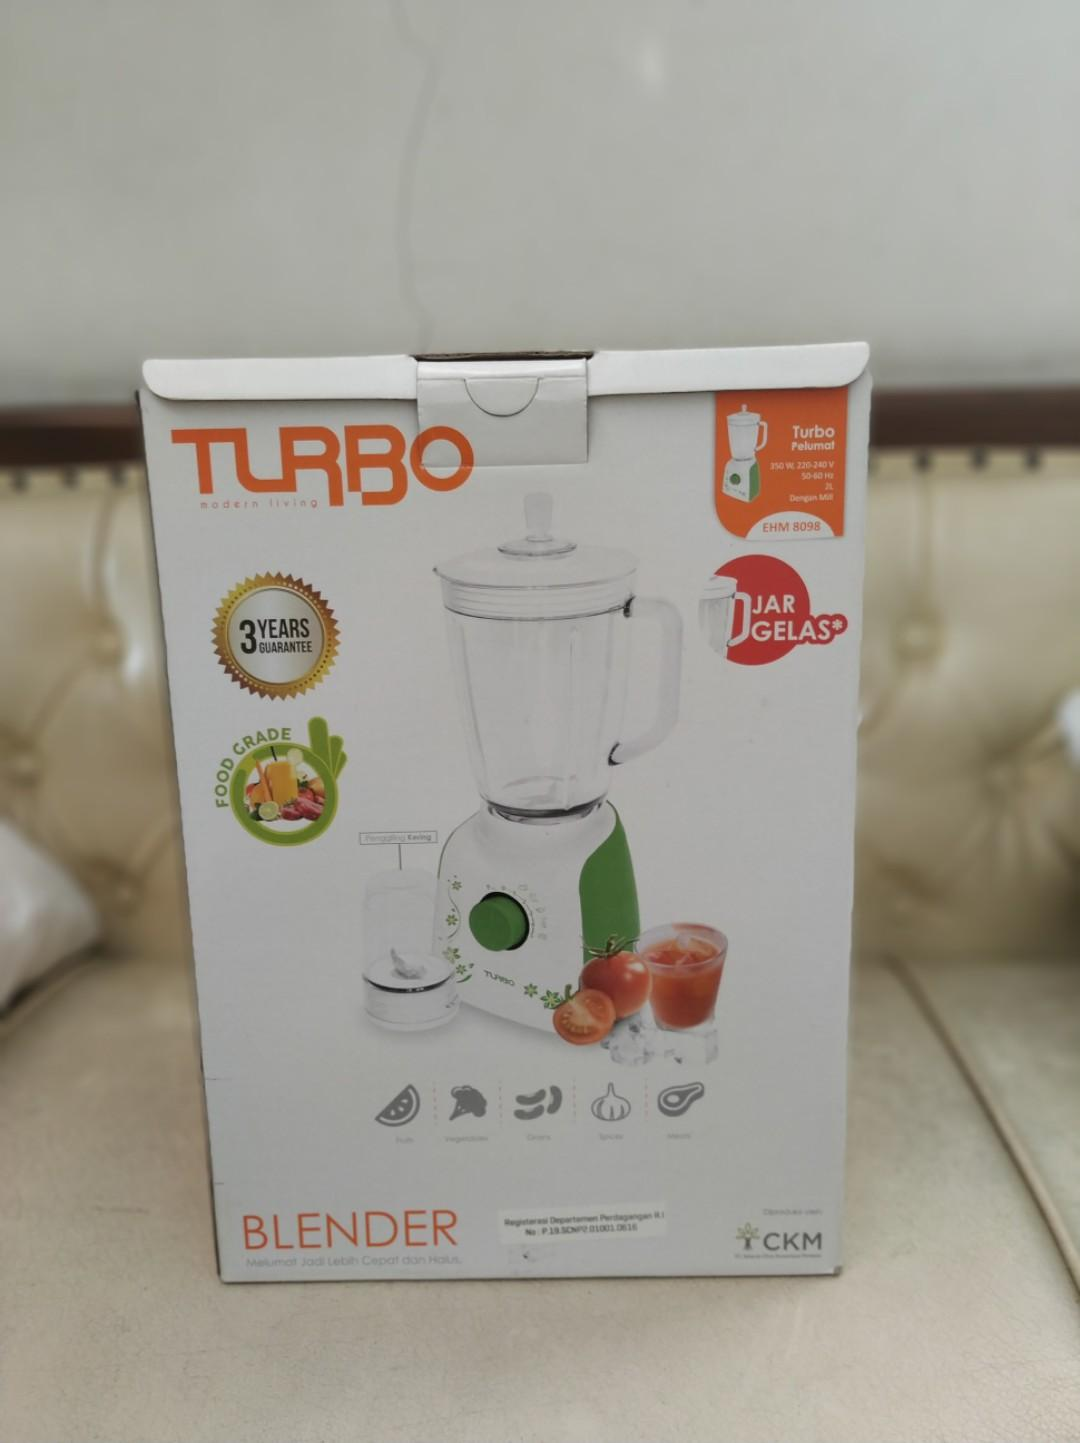 Blender Turbo type EHM 8098